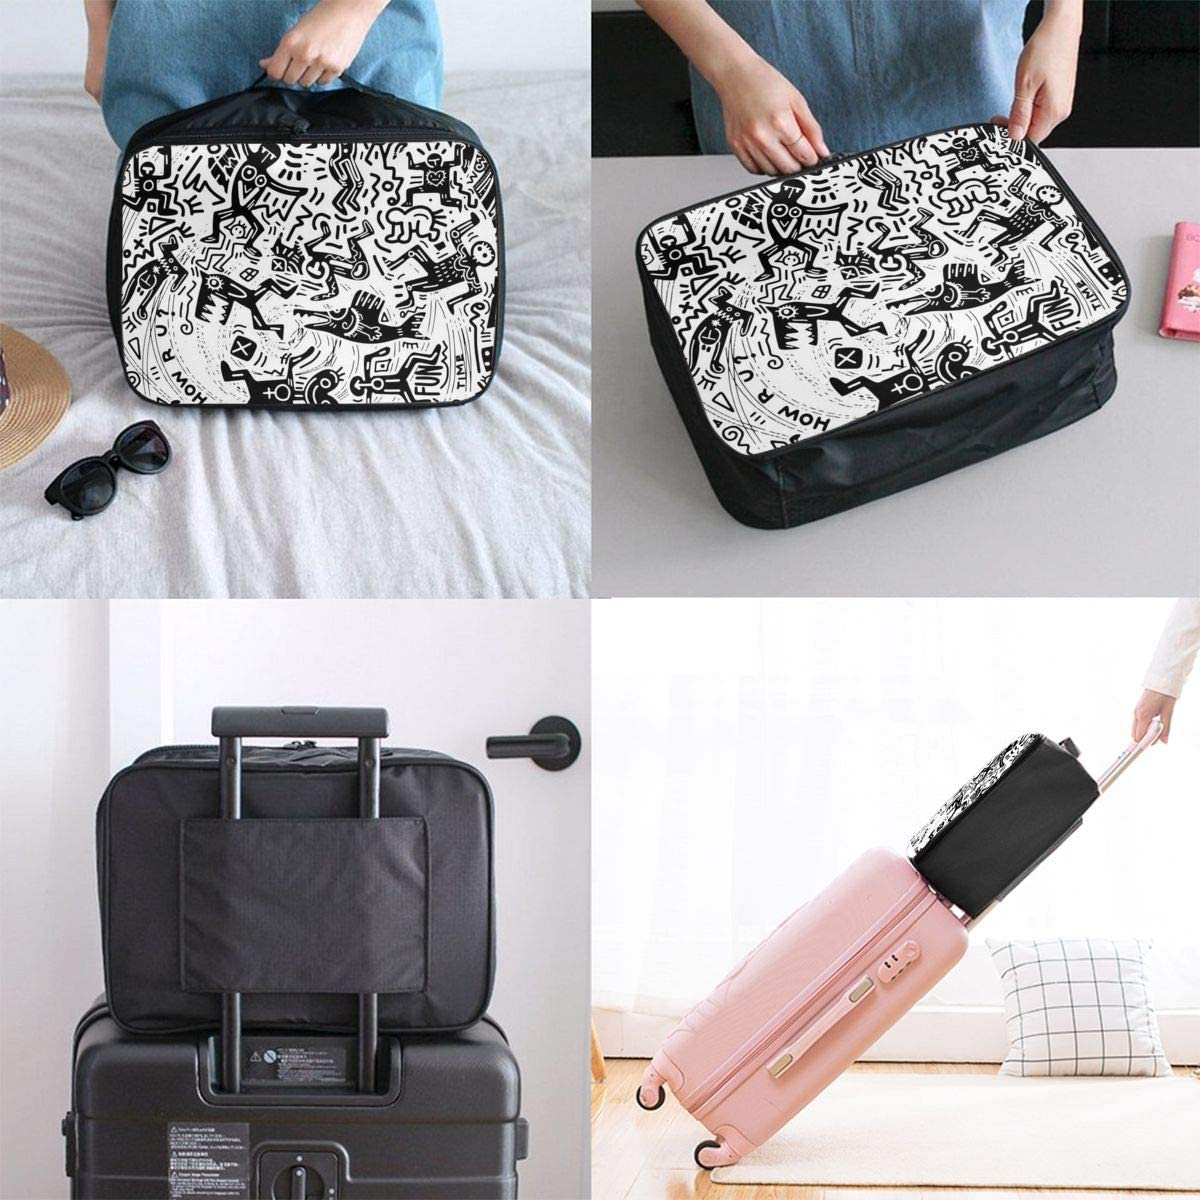 Crazy People City Psychedelic Doodles Lightweight LargeTravel Storage Luggage Trolley Bag Travel Duffel Bags Carry-On Tote